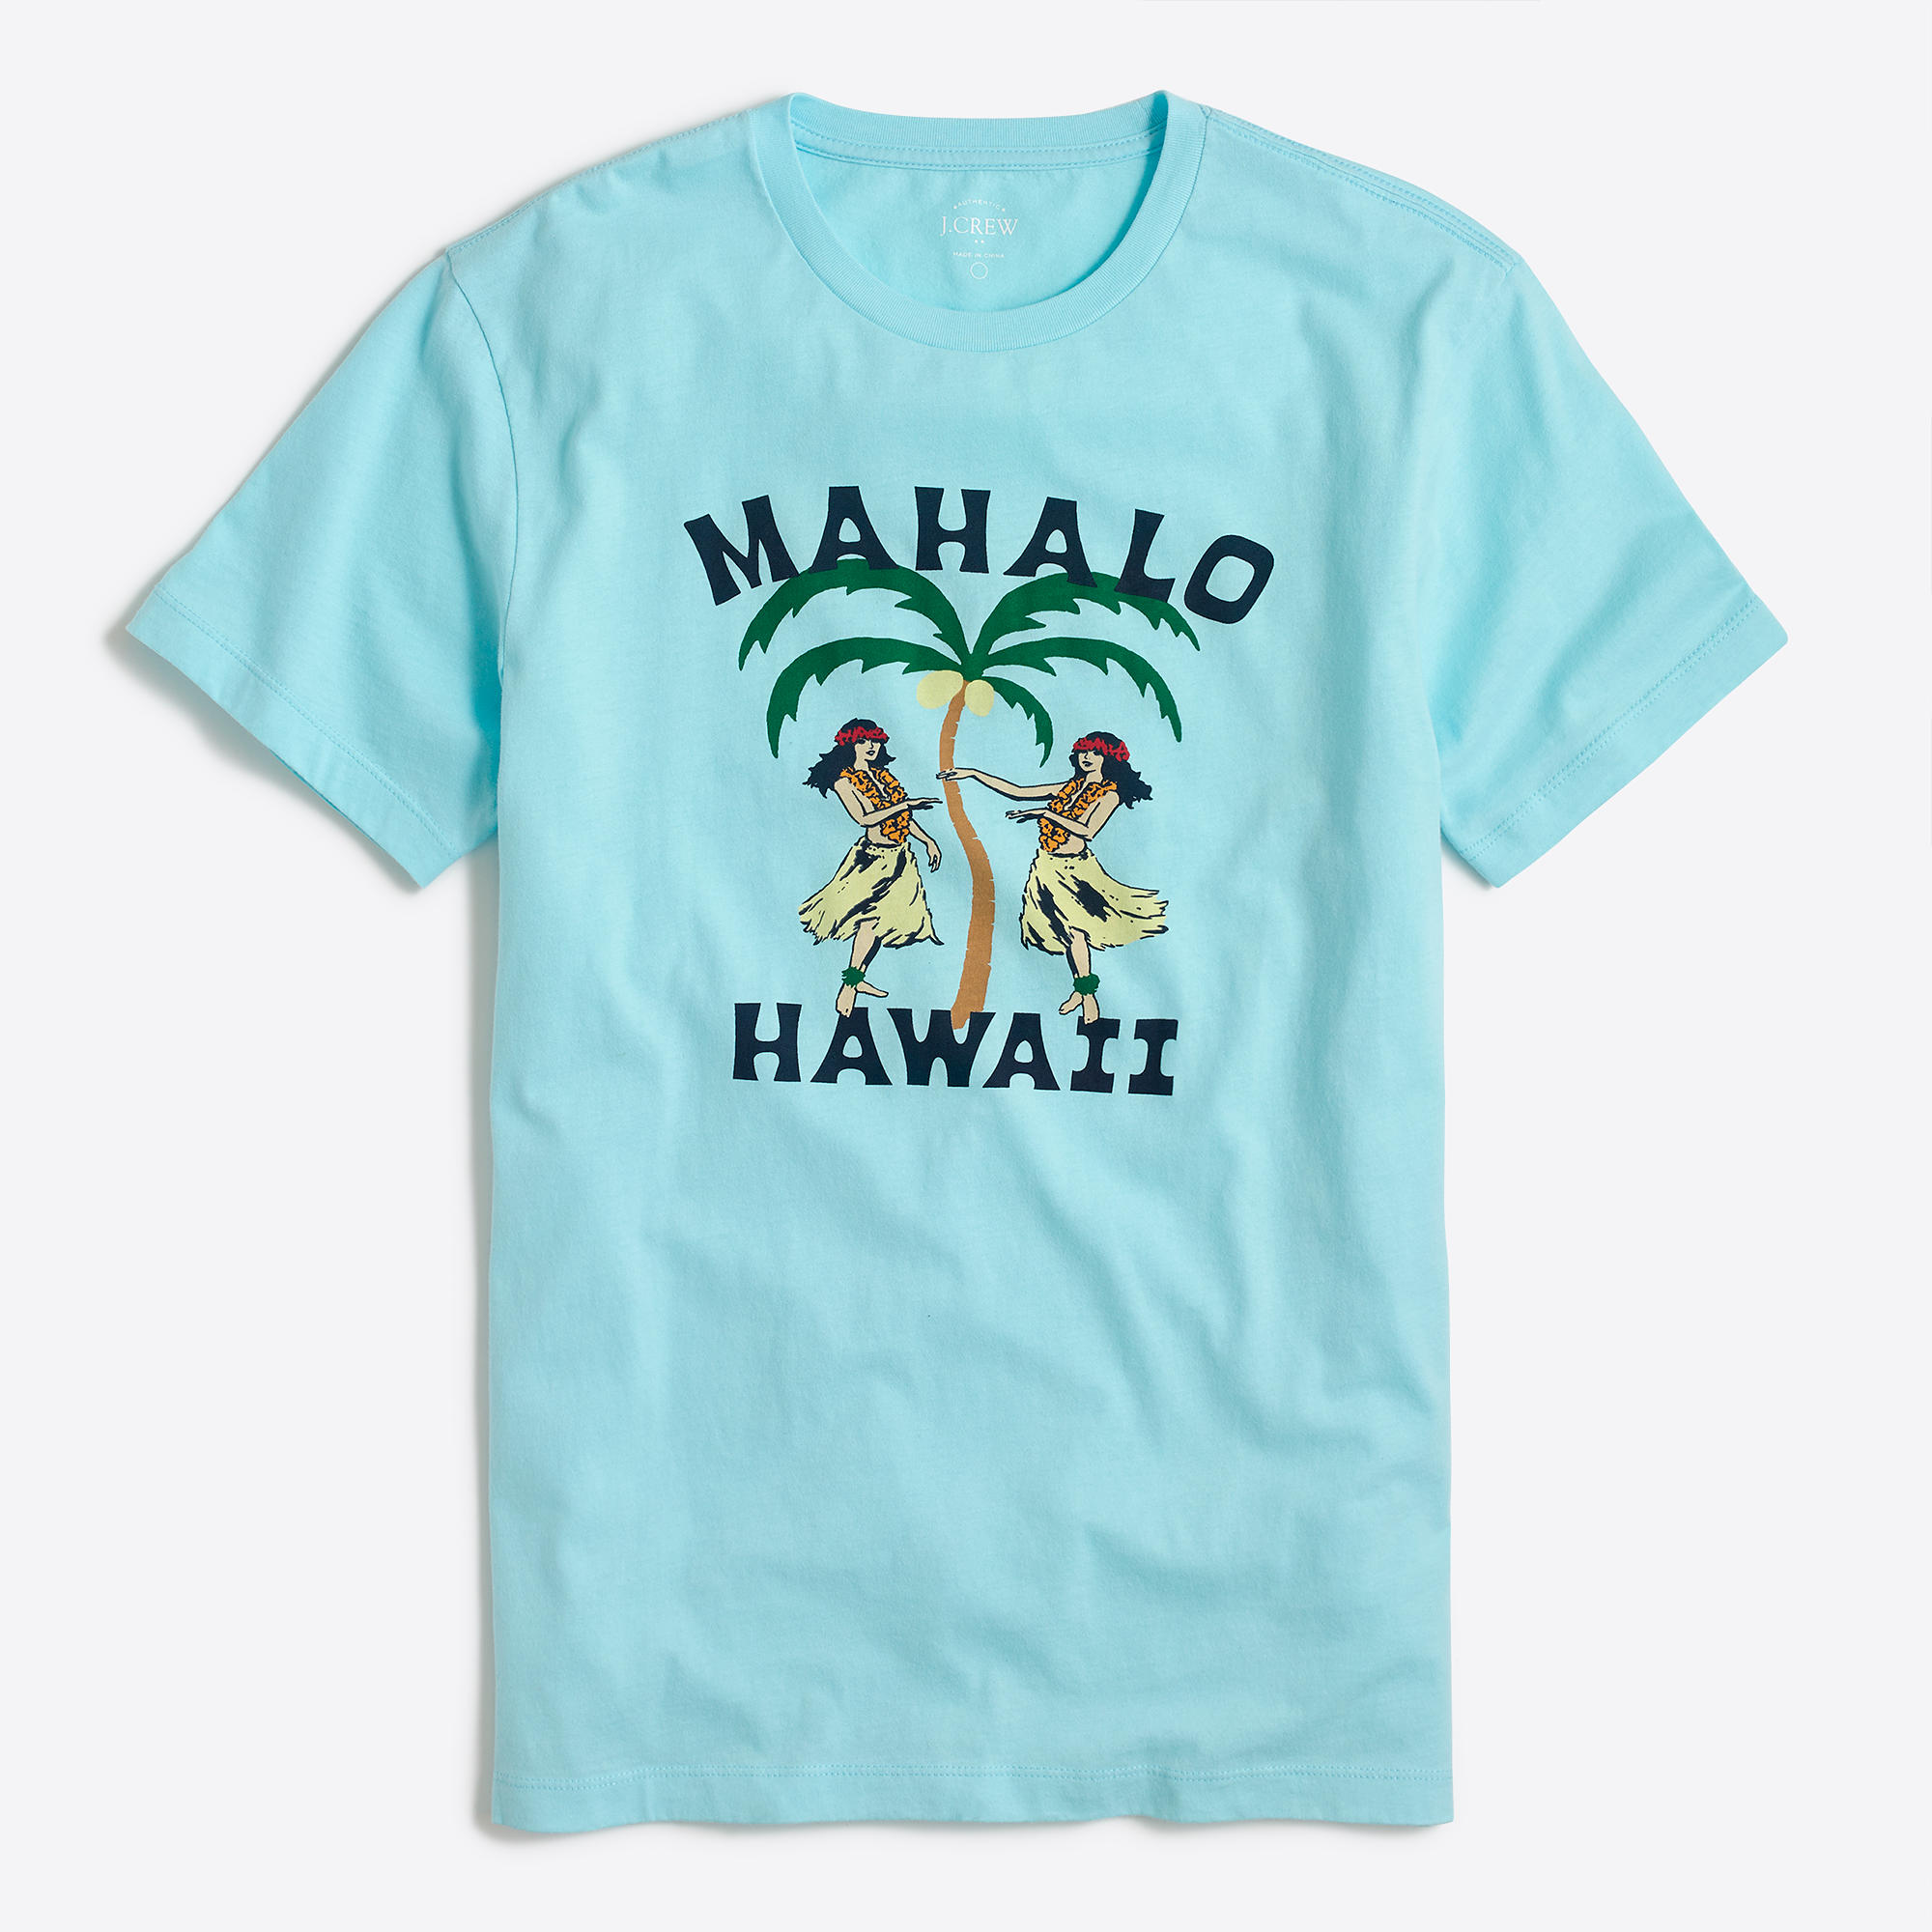 Hawaiian girls t shirt factorymen stripes graphics for Hawaiian graphic t shirts